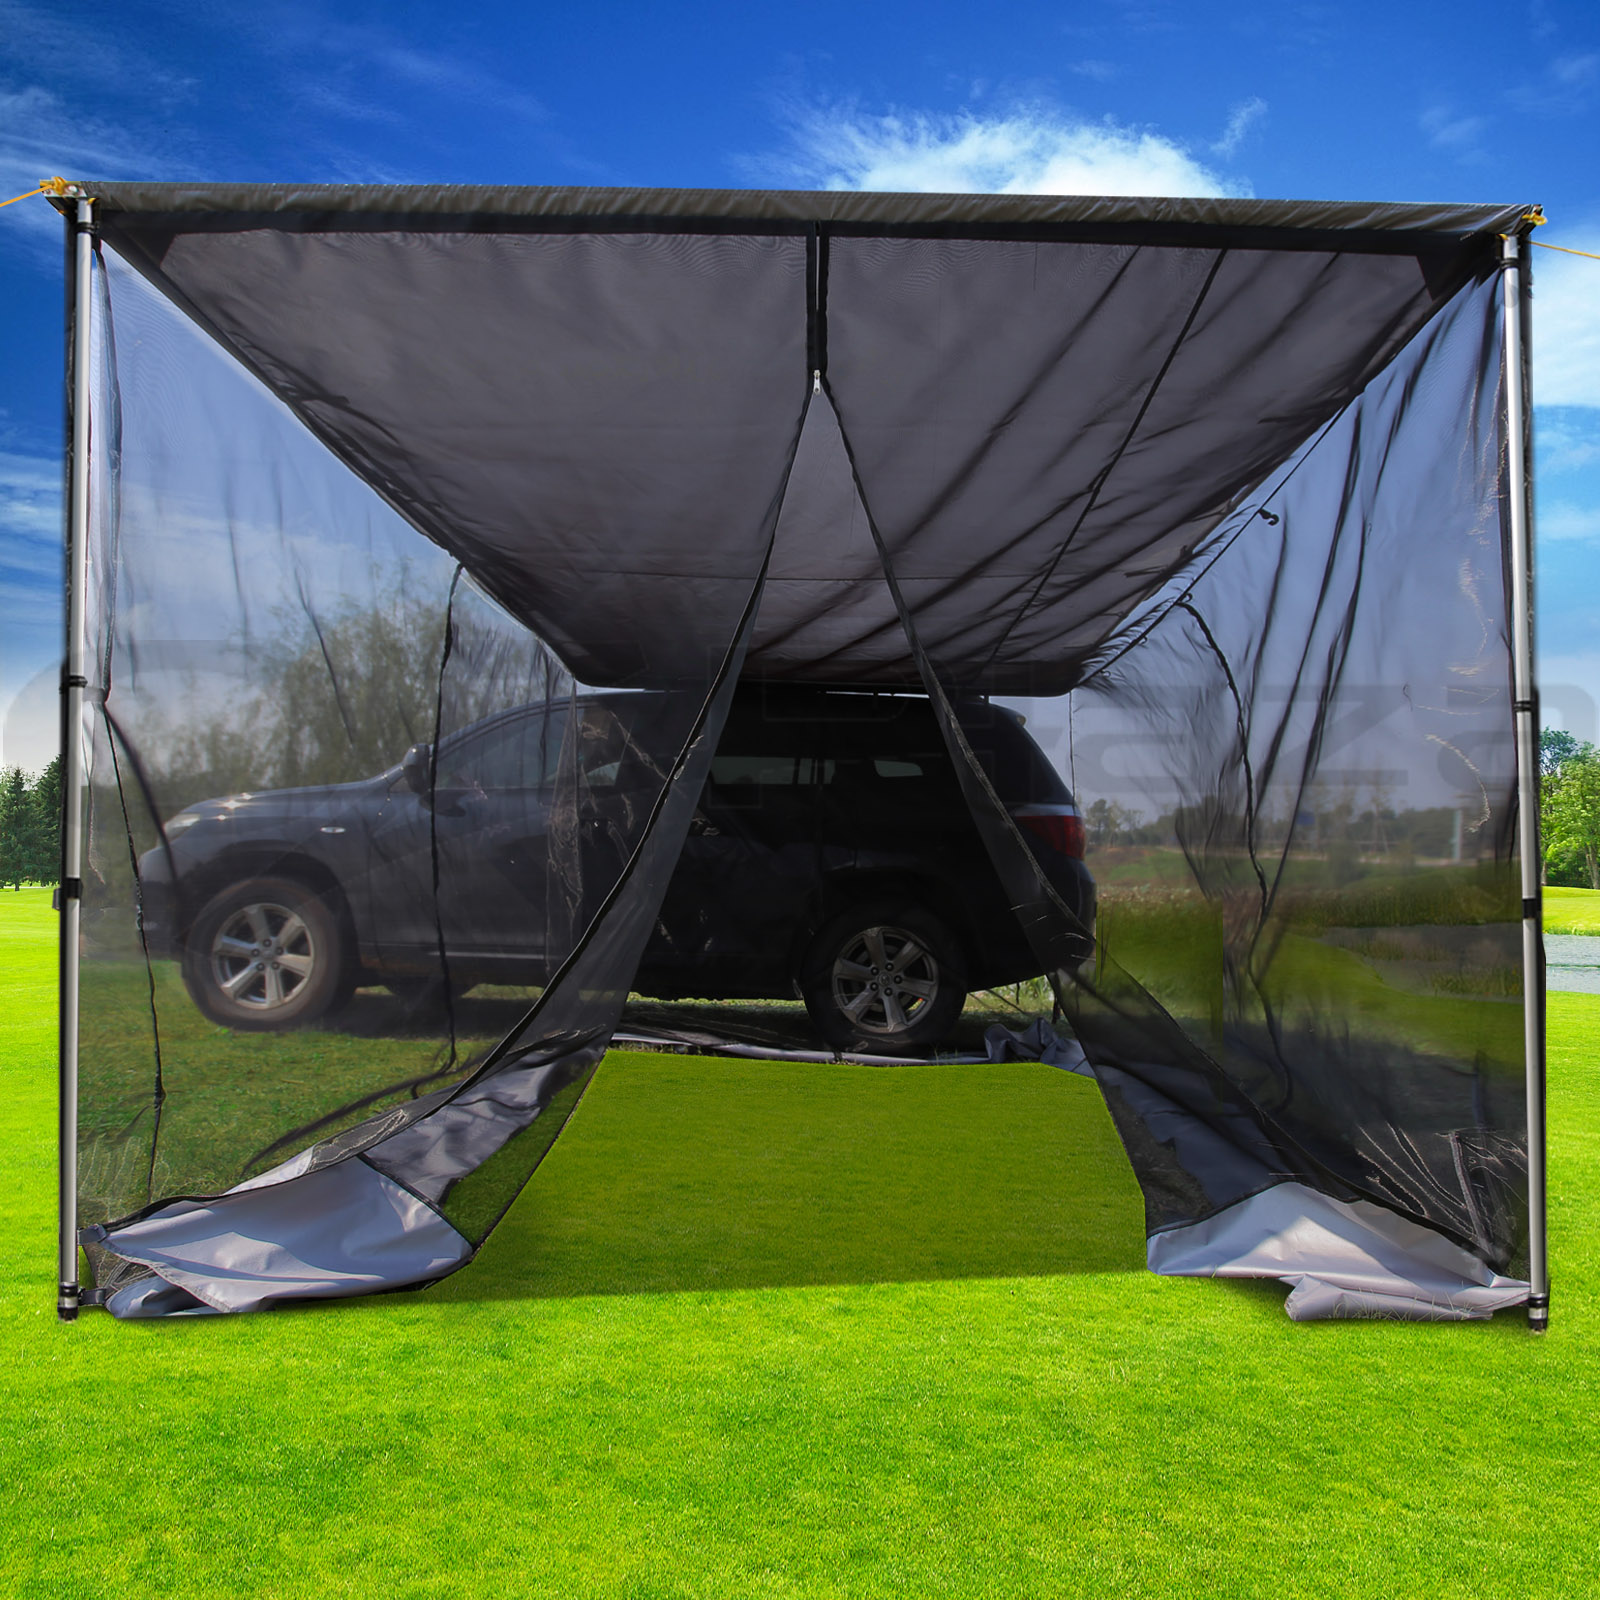 2M 3M CAR AWNING EXTENSION SIDE AWNING SUN SHADE CAMPER ...